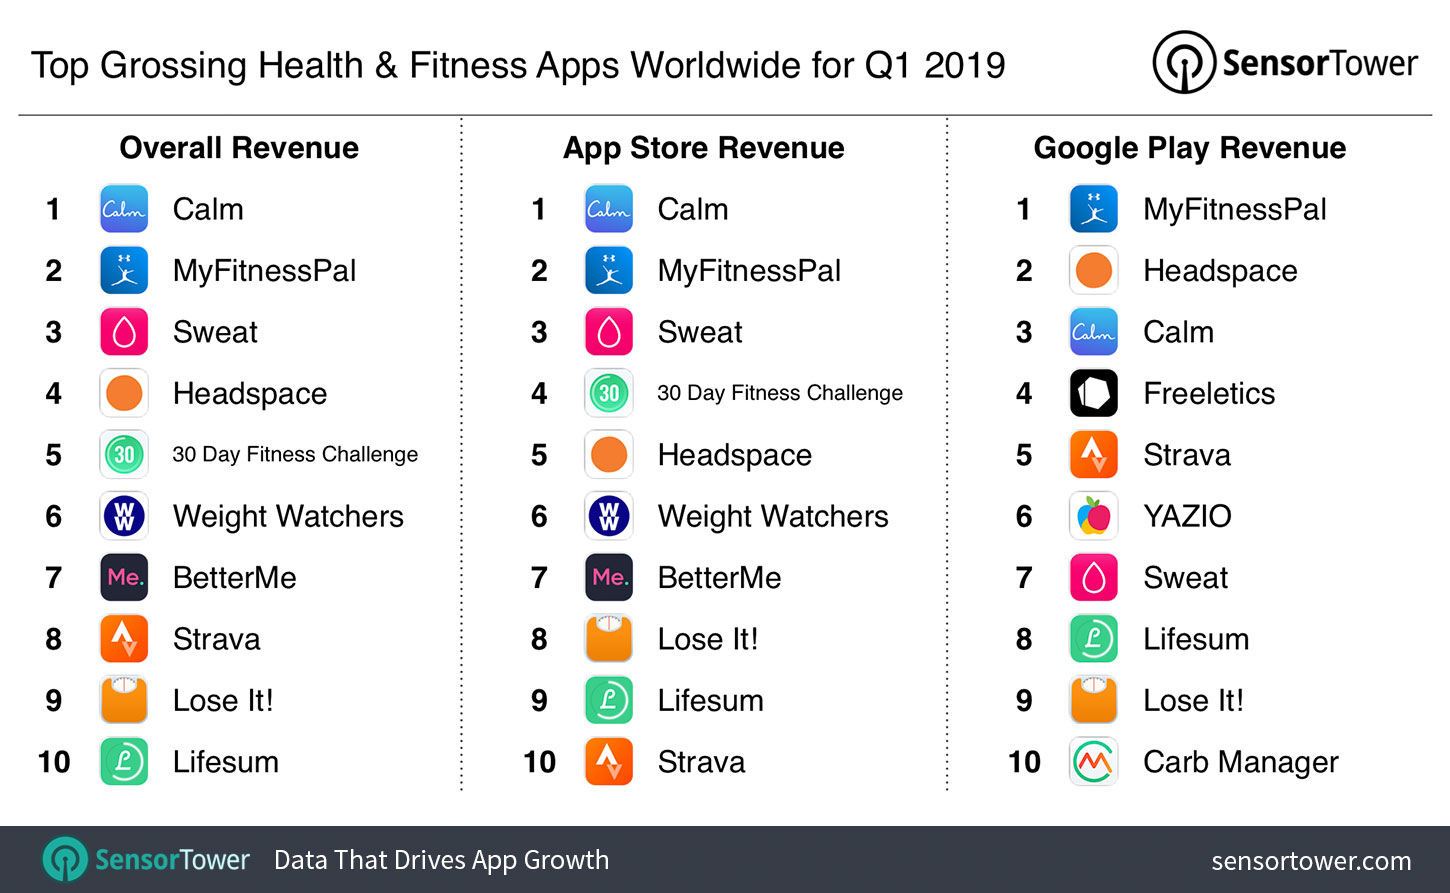 Top Grossing Photo Video Category Apps Worldwide For Q1 2019 - top grossing health and fitness apps worldwide for q1 2019